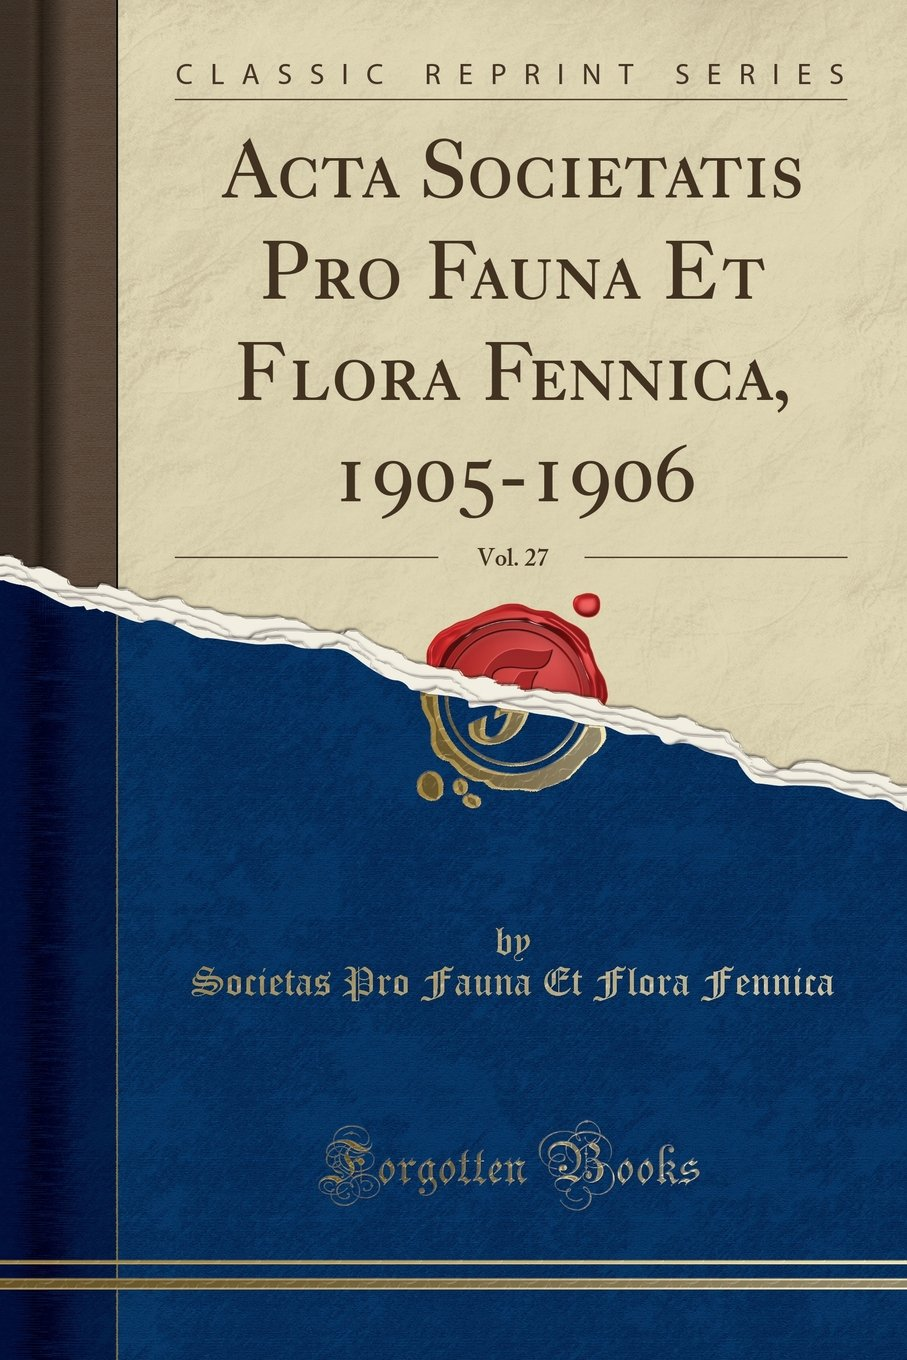 Acta Societatis Pro Fauna Et Flora Fennica, 1905-1906, Vol. 27 (Classic Reprint) (German Edition) ebook